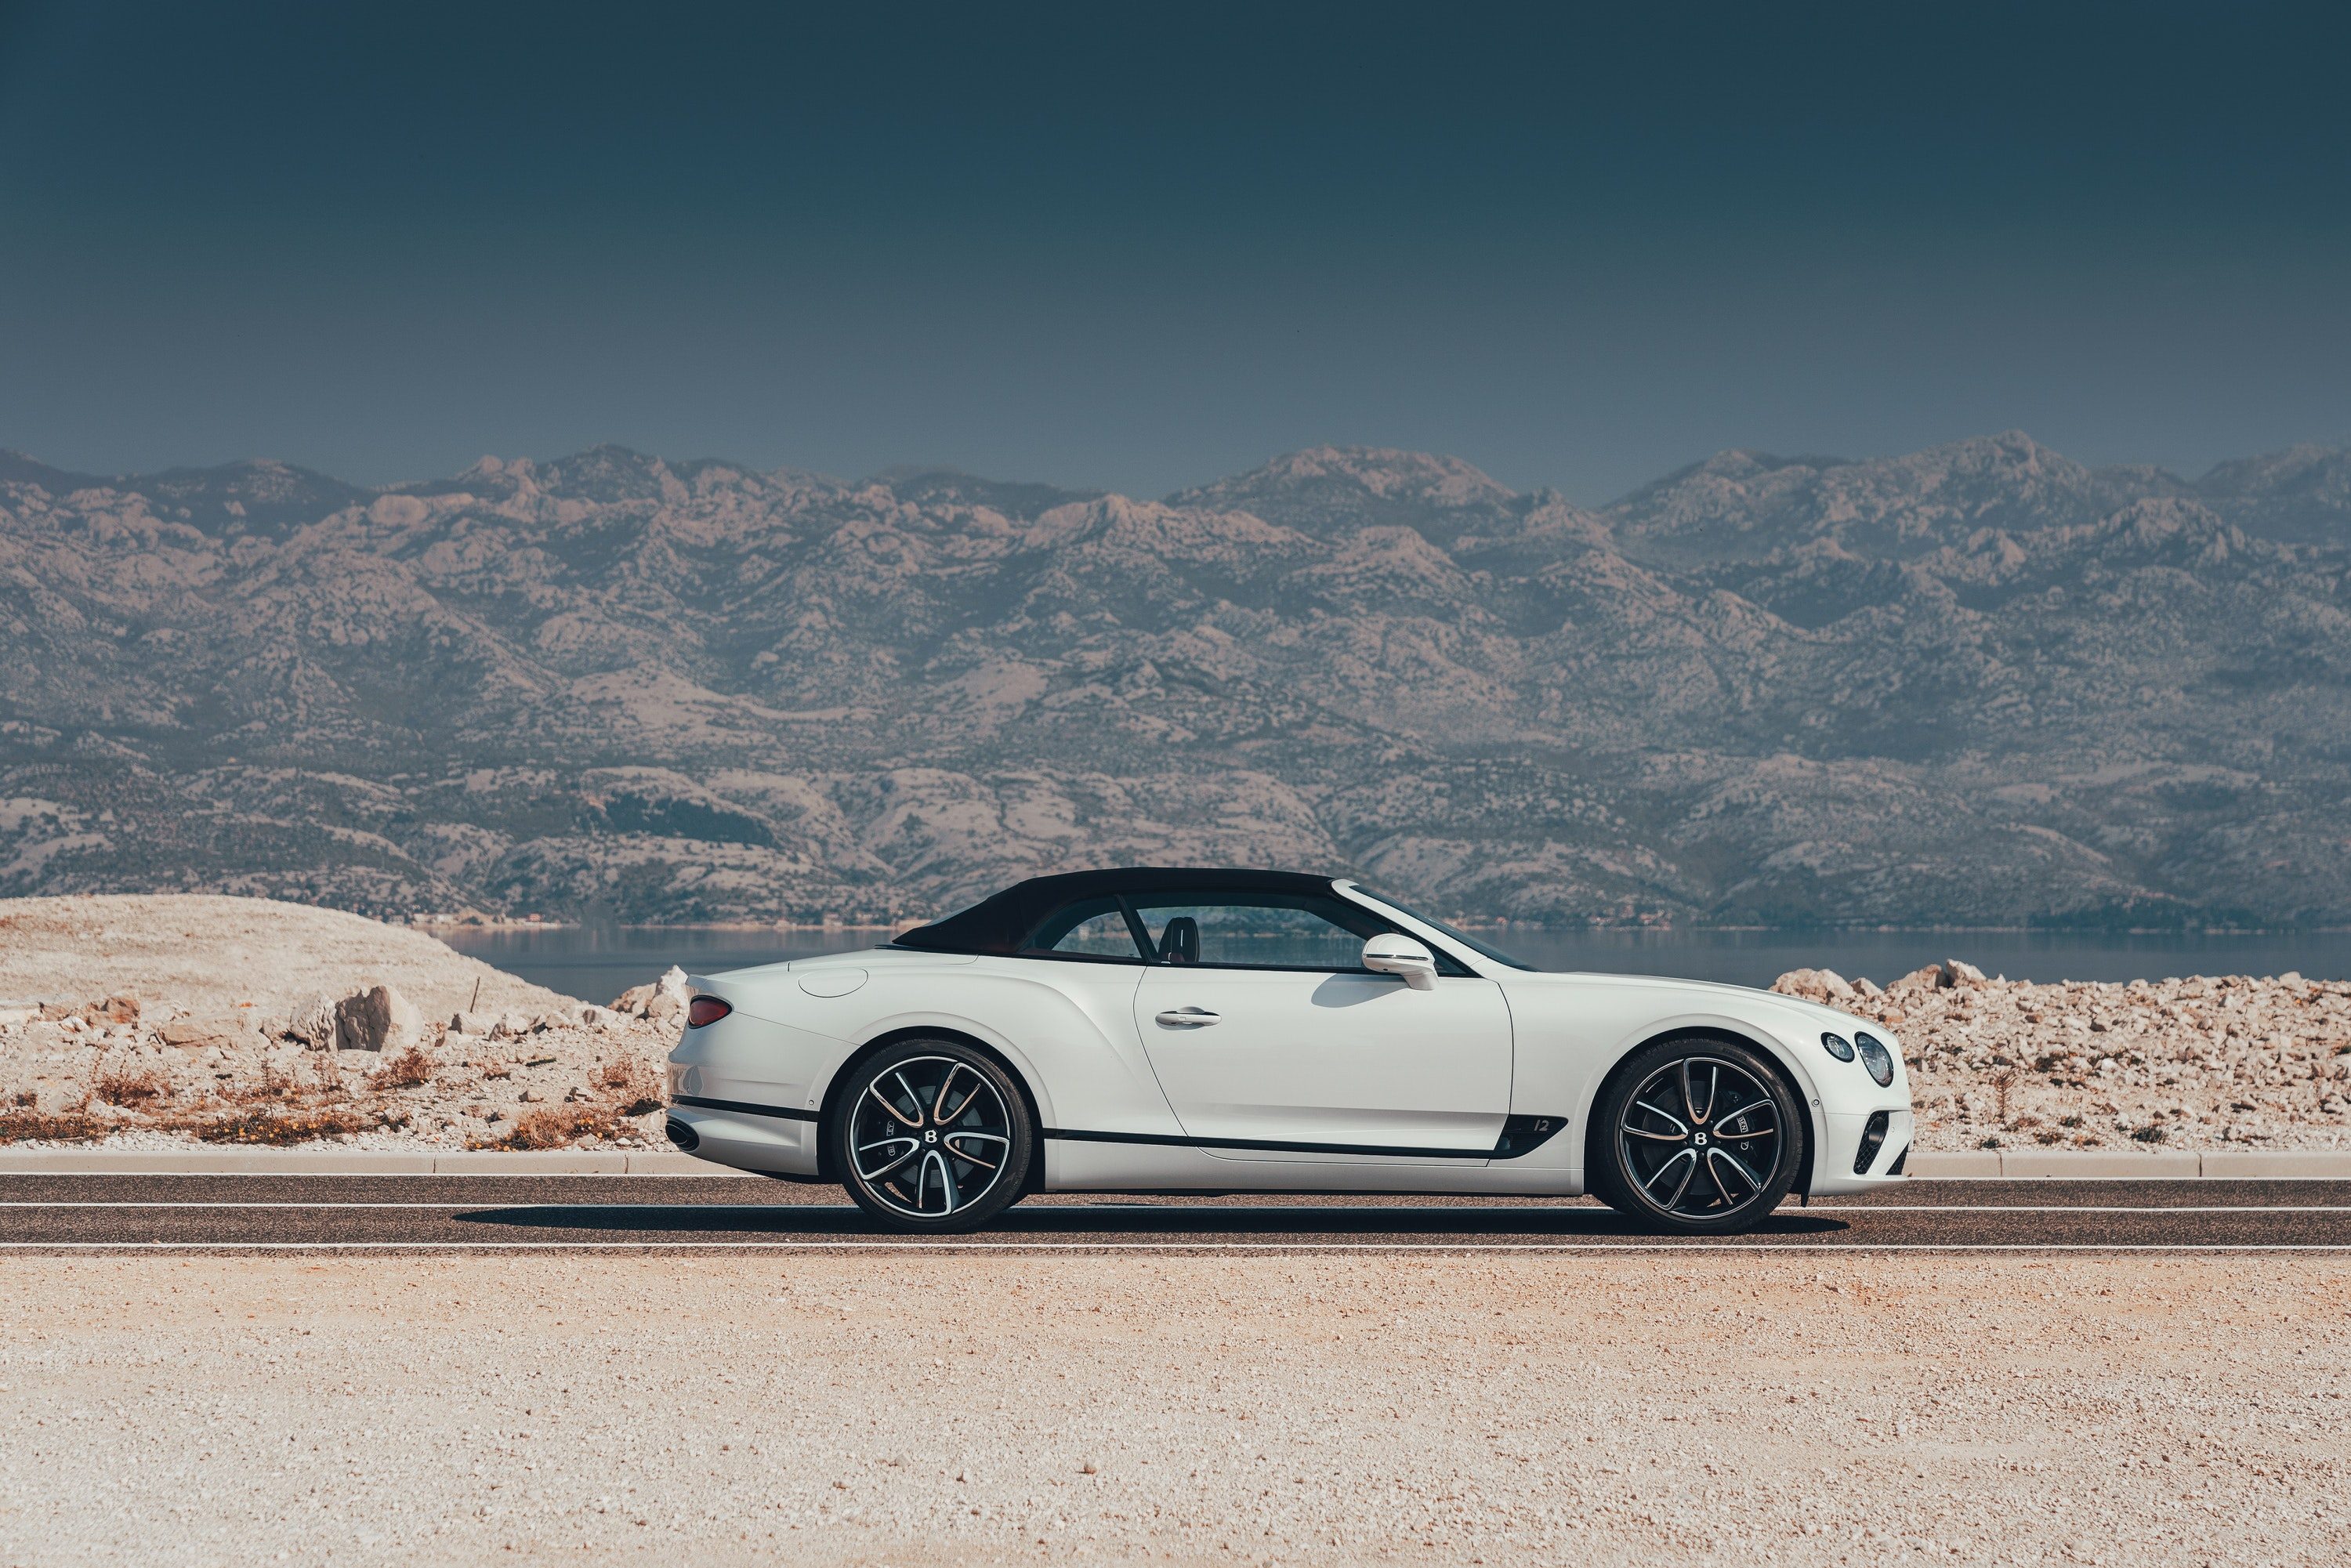 side view of  Bentley Continental GT Convertible with the roof up